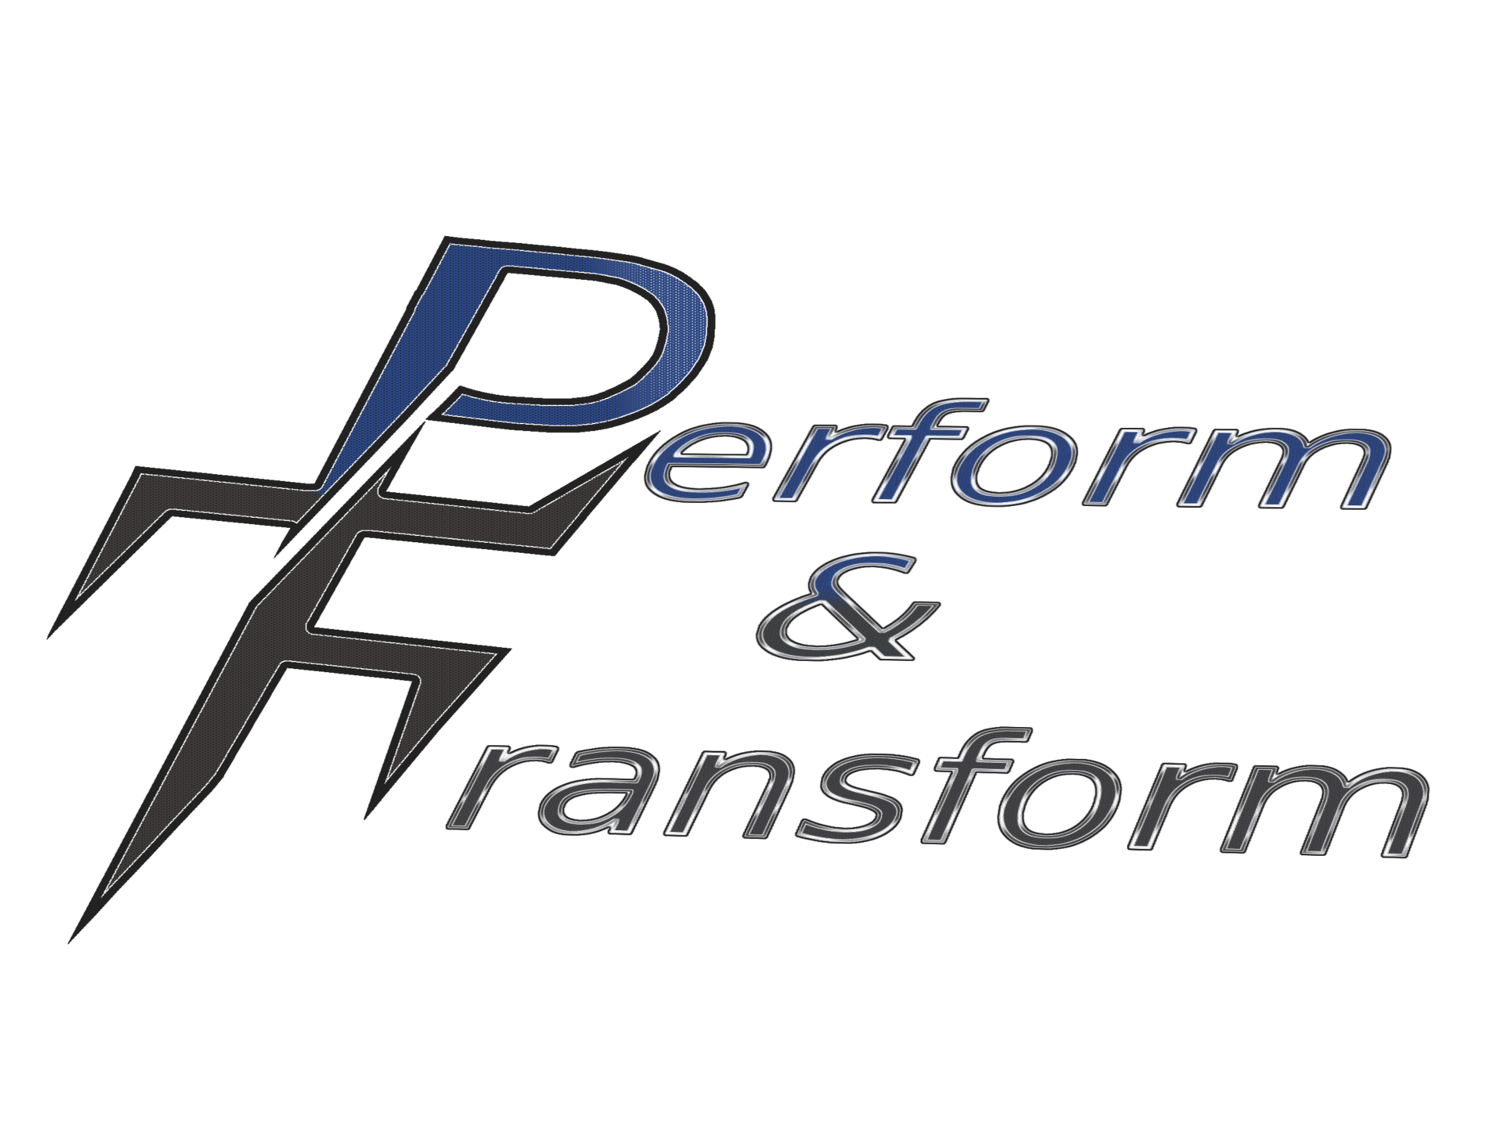 Perform And Transform